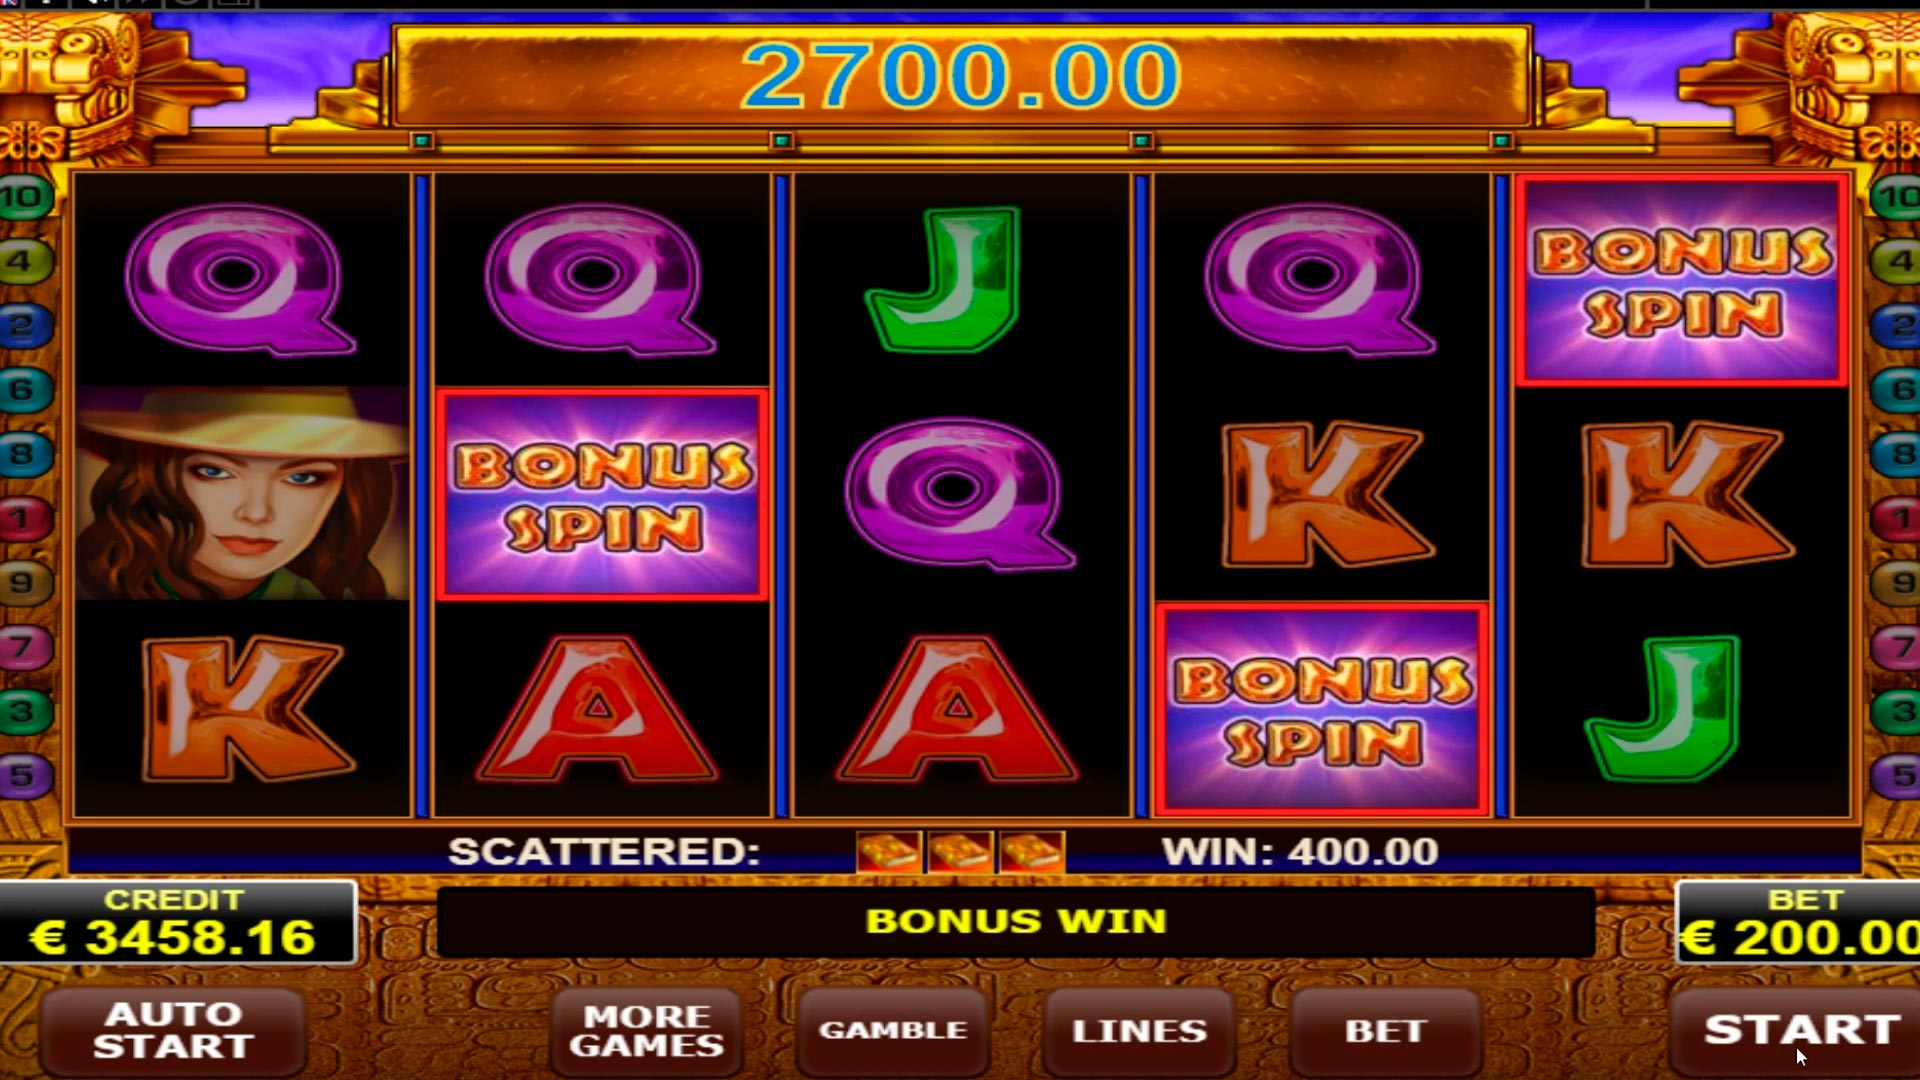 Book of aztek kasino slot moje bonusová hra big win € 19.200